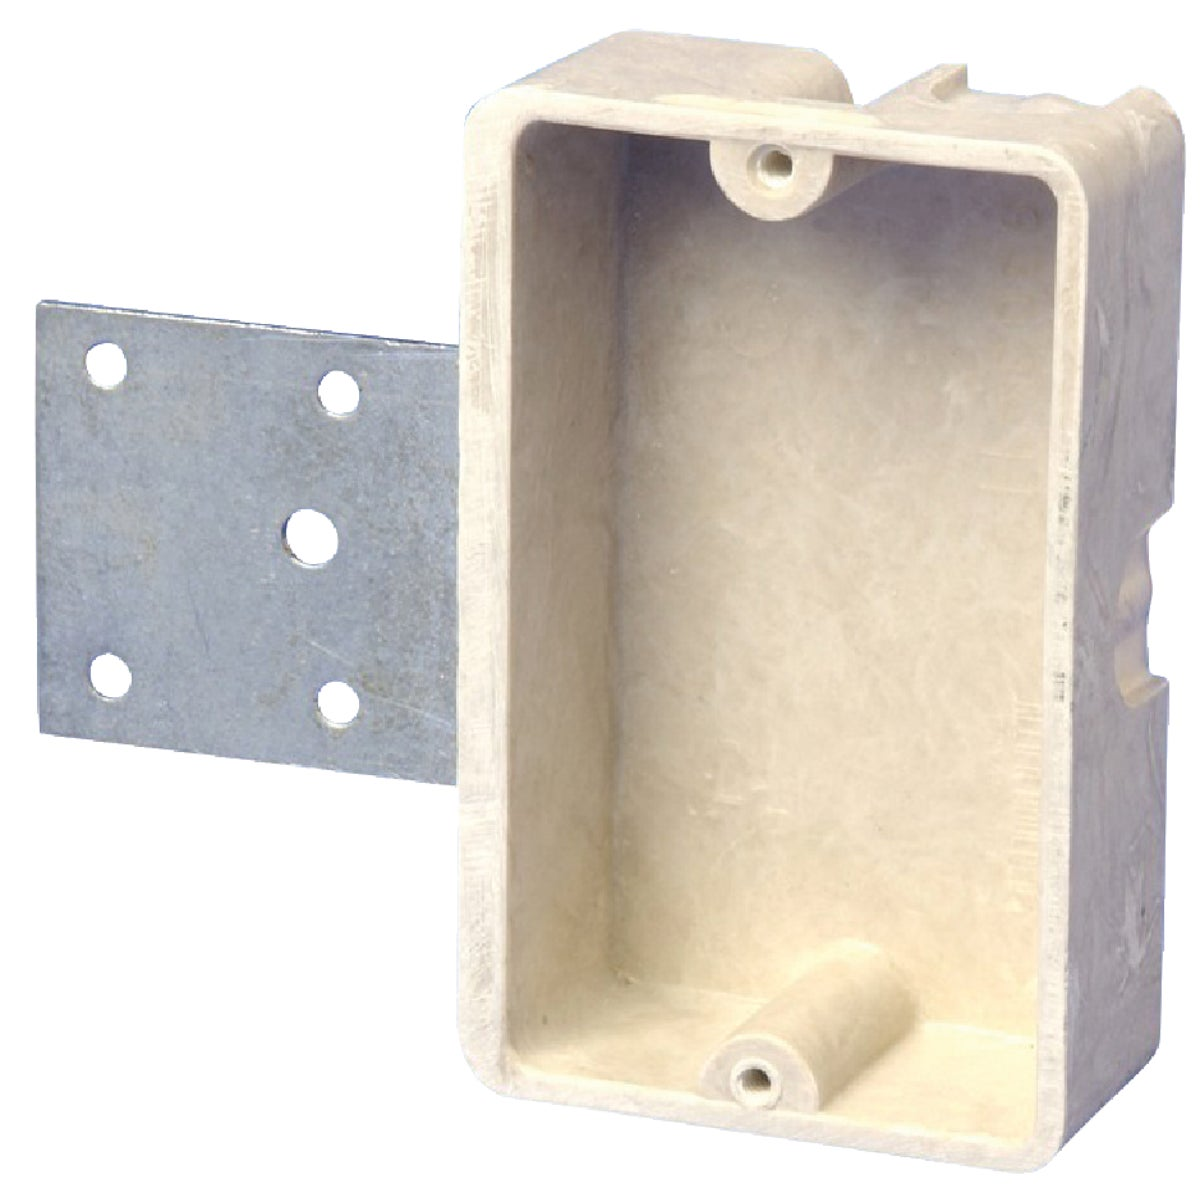 FIBERGLASS SWITCH BOX - 9303=H by Allied Moulded